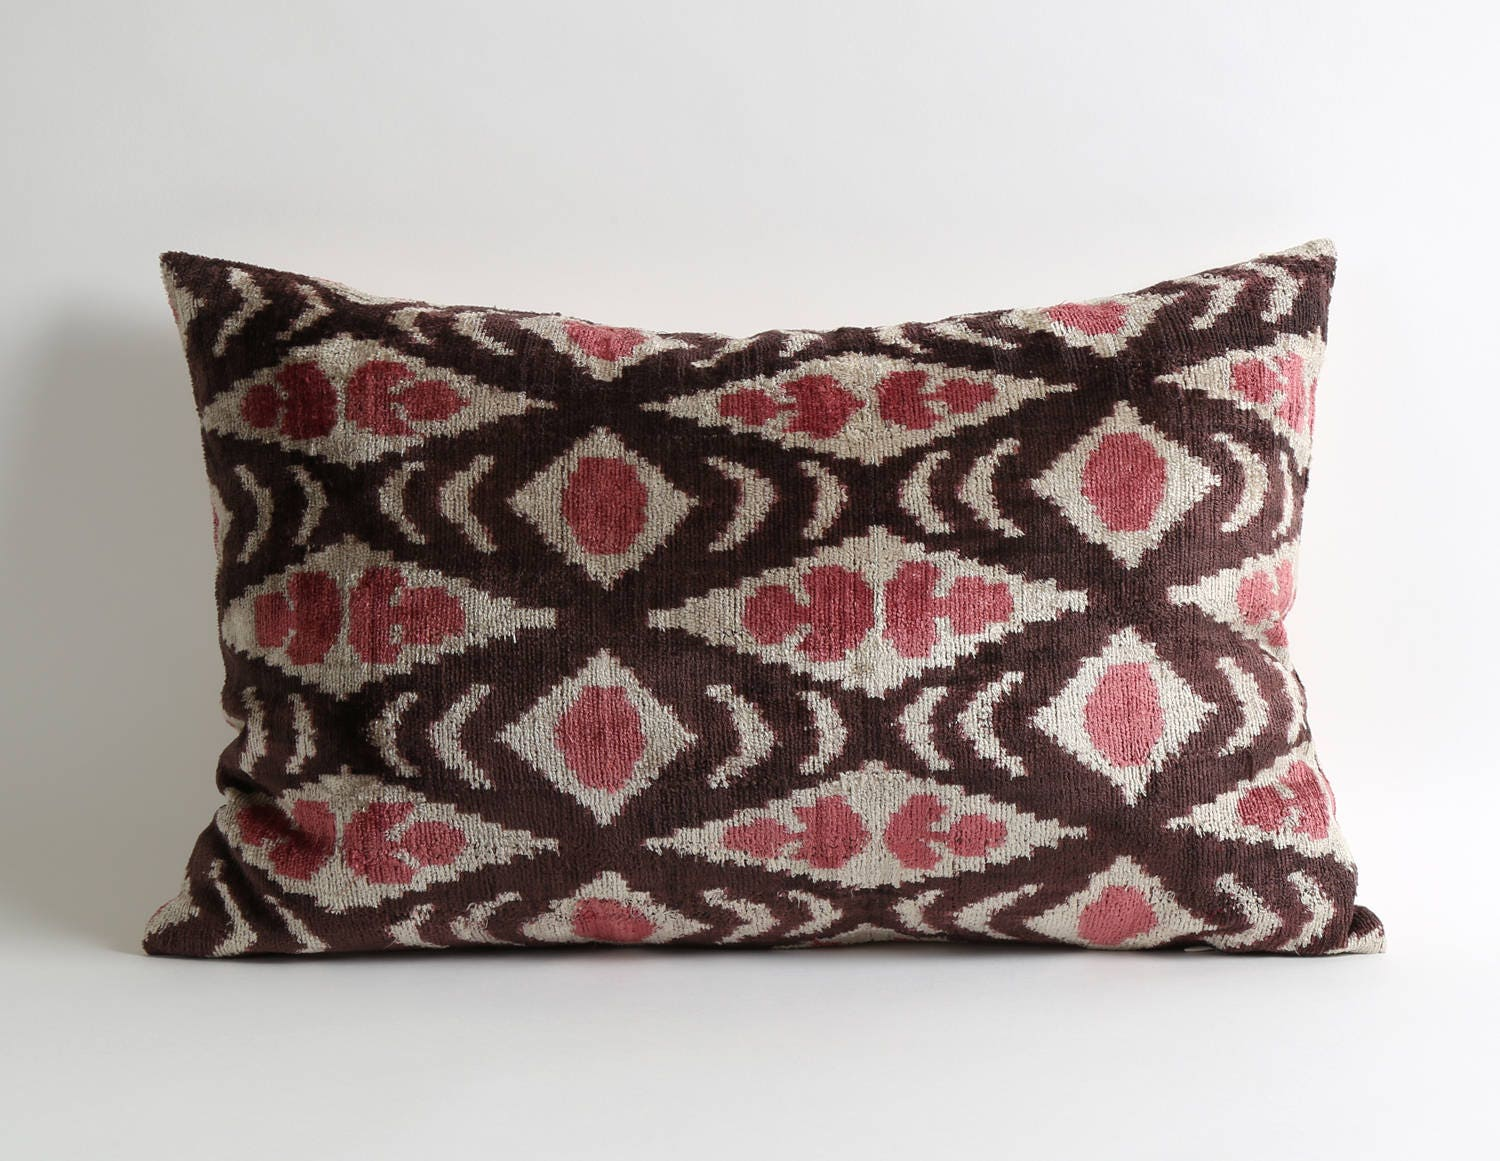 pink brown cream throw pillows cover 14x22 velvet pillows. Black Bedroom Furniture Sets. Home Design Ideas